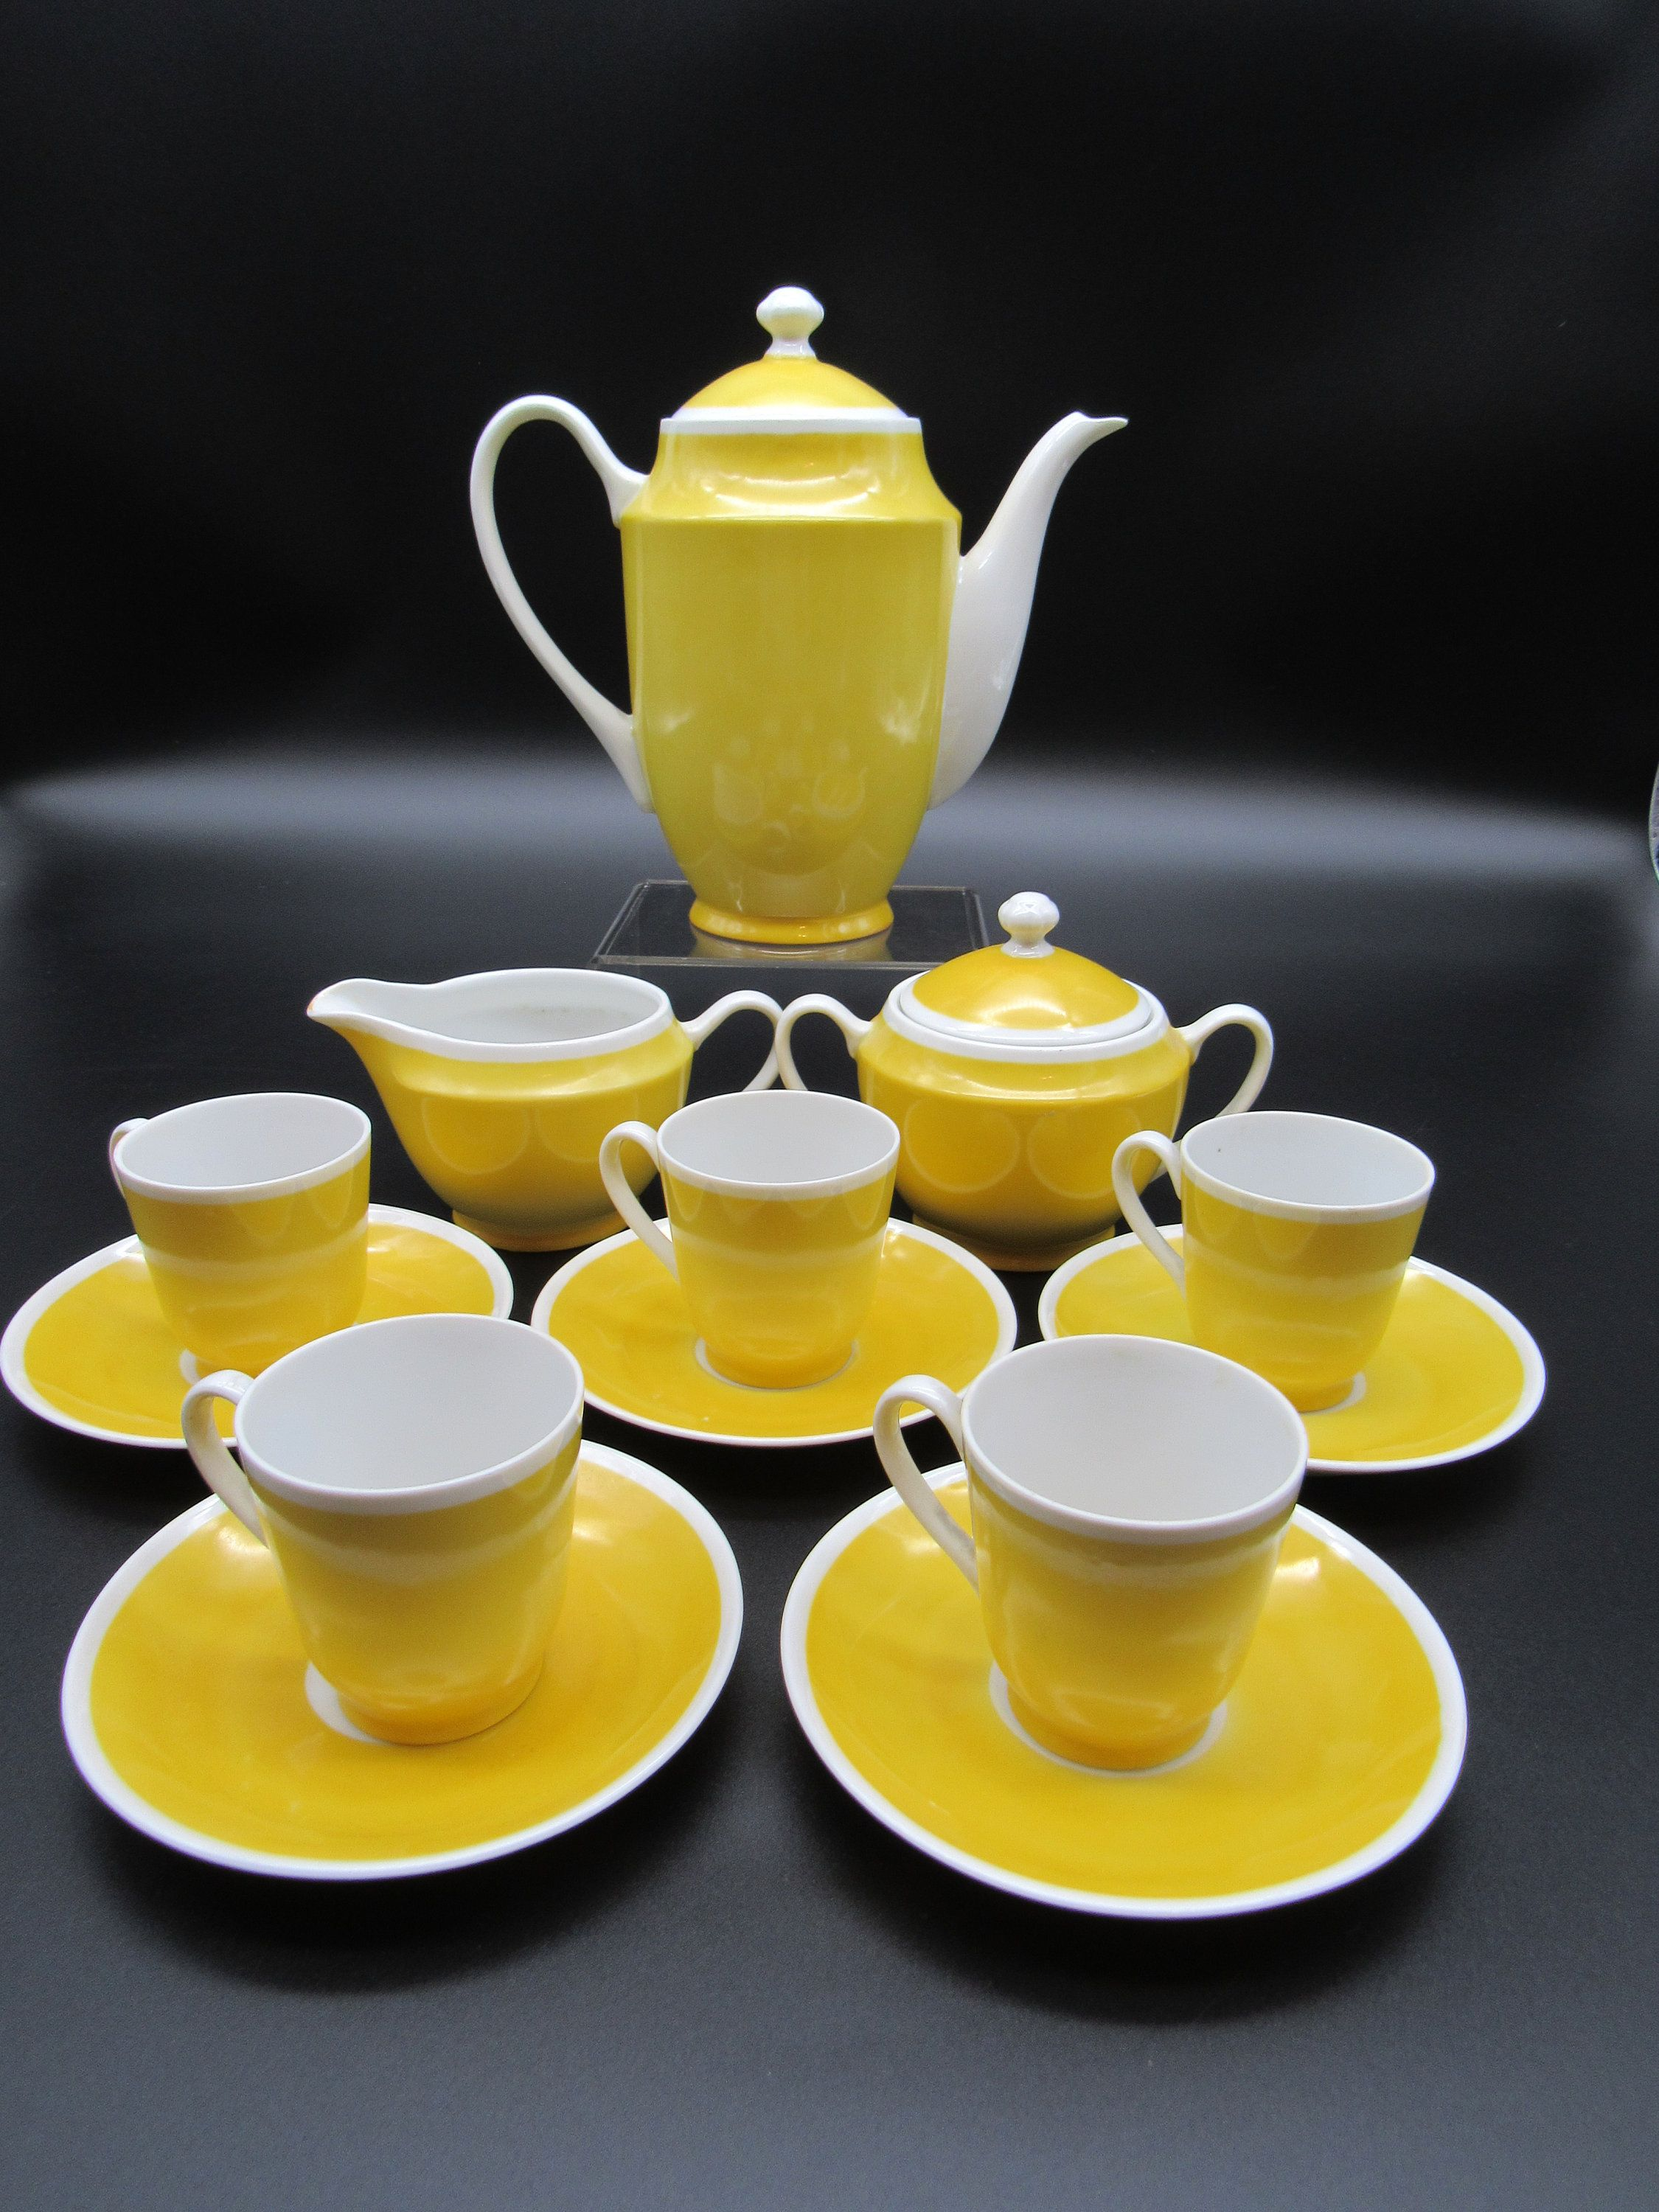 Vintage Czechoslovakia Czech Tea Coffee Set Art Deco Bright Yellow White J B Co In 2021 Coffee Set Yellow Coffee Tea